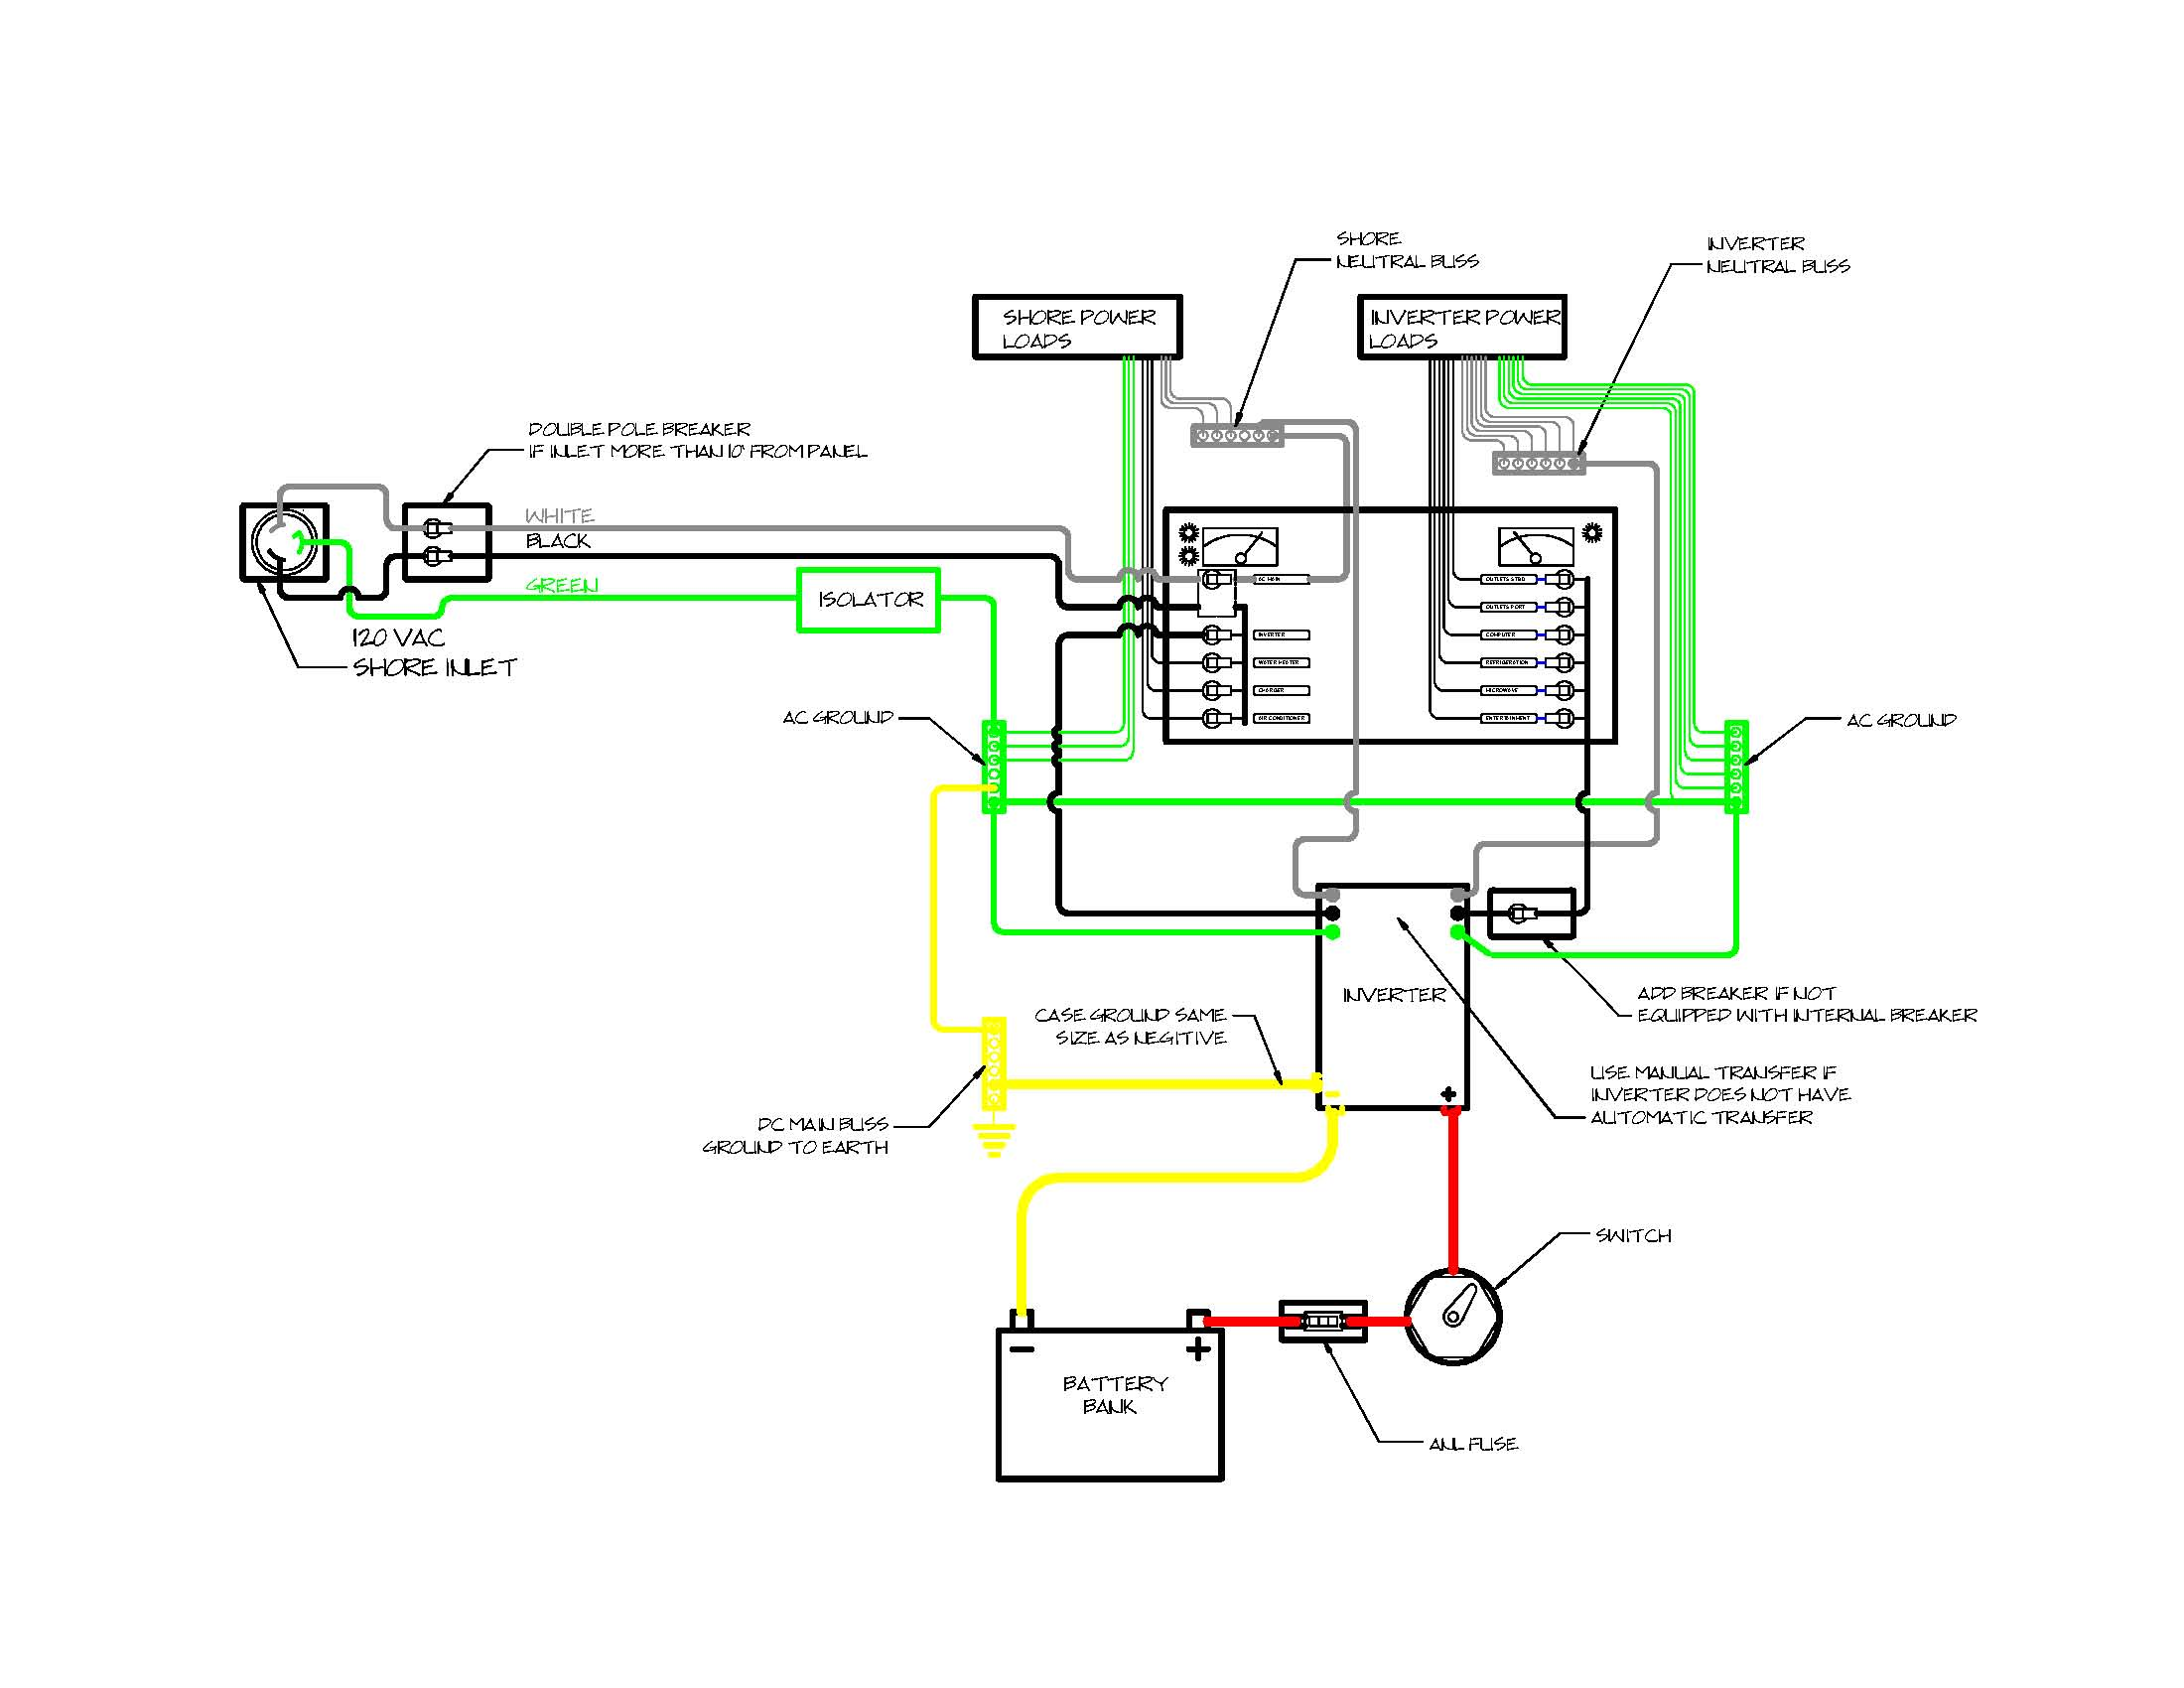 DIAGRAM] Cobra Inverter Wiring Diagram FULL Version HD Quality Wiring  Diagram - FREEDOMOTT.COIFFURE-A-DOMICILE-67.FR freedomott.coiffure-a-domicile-67.fr